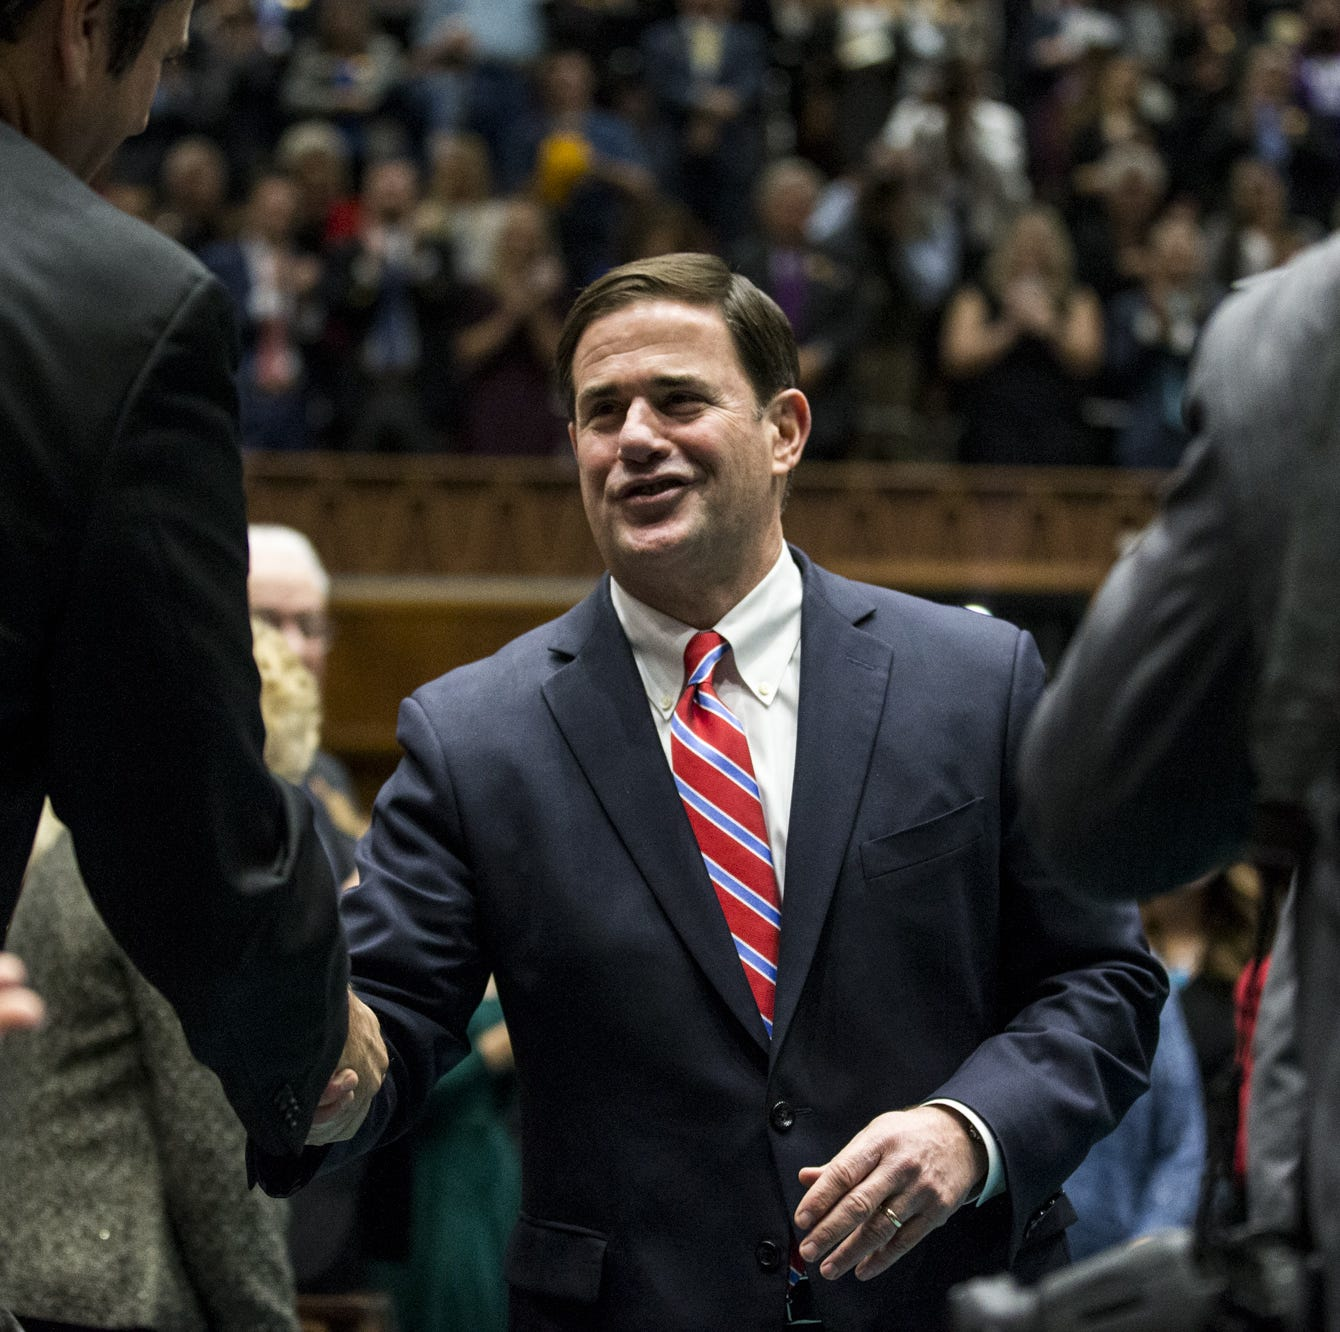 Arizona Gov. Doug Ducey defies political divisions in his 2019 State of the State address